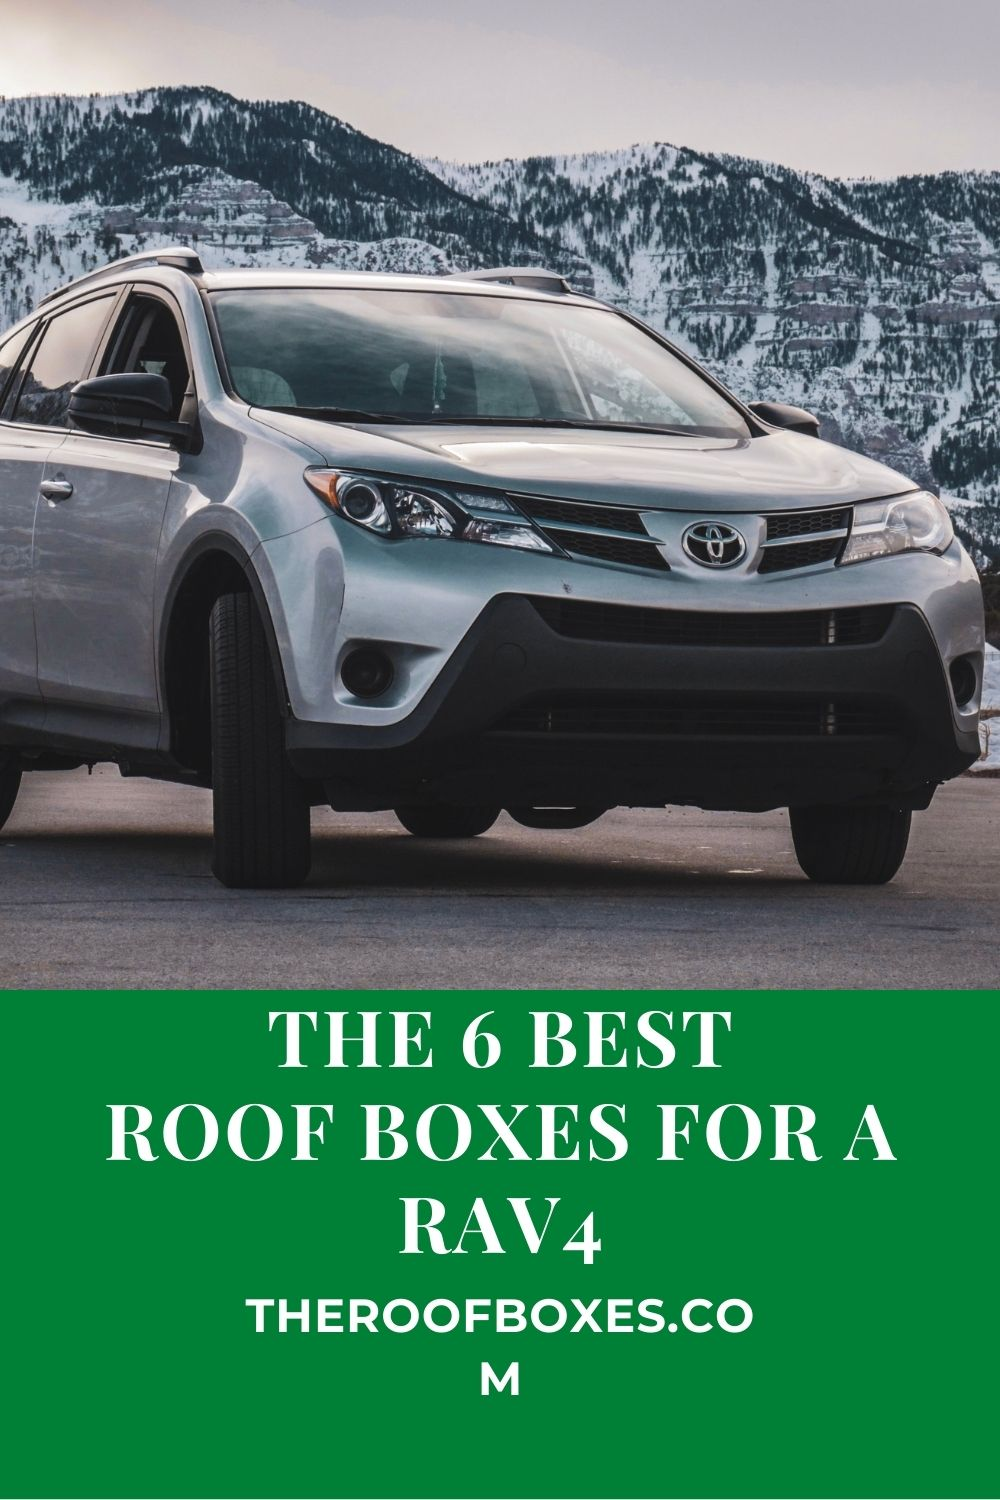 The 6 Best ROOF BOXES FOR A RAV4